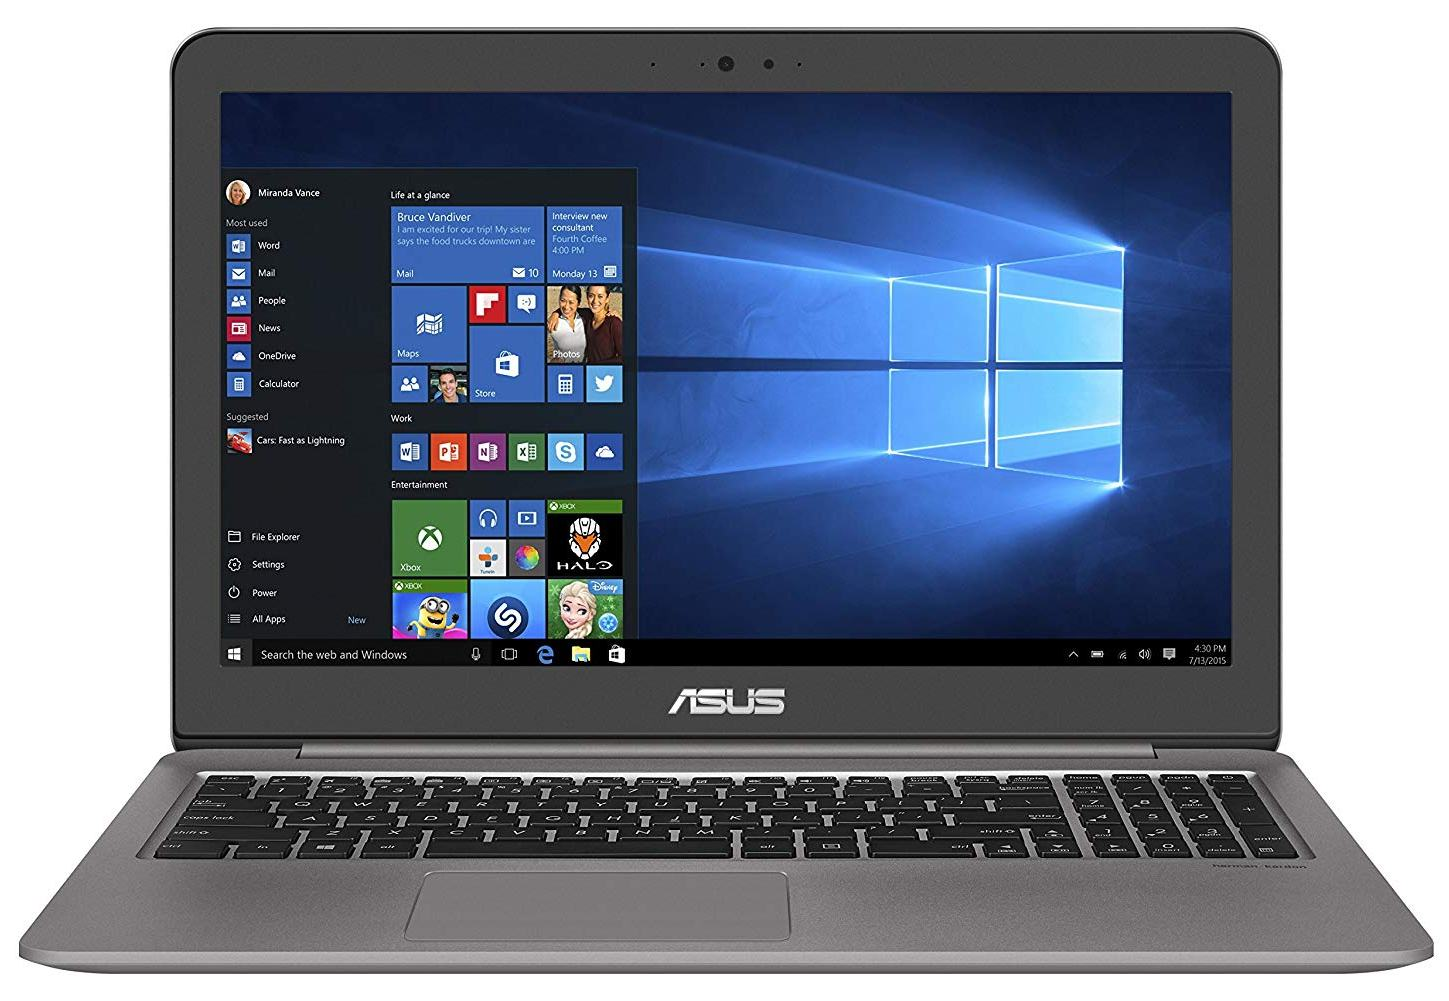 Best ASUS Gaming Laptops in 2018 - Reviews & Buying Guide